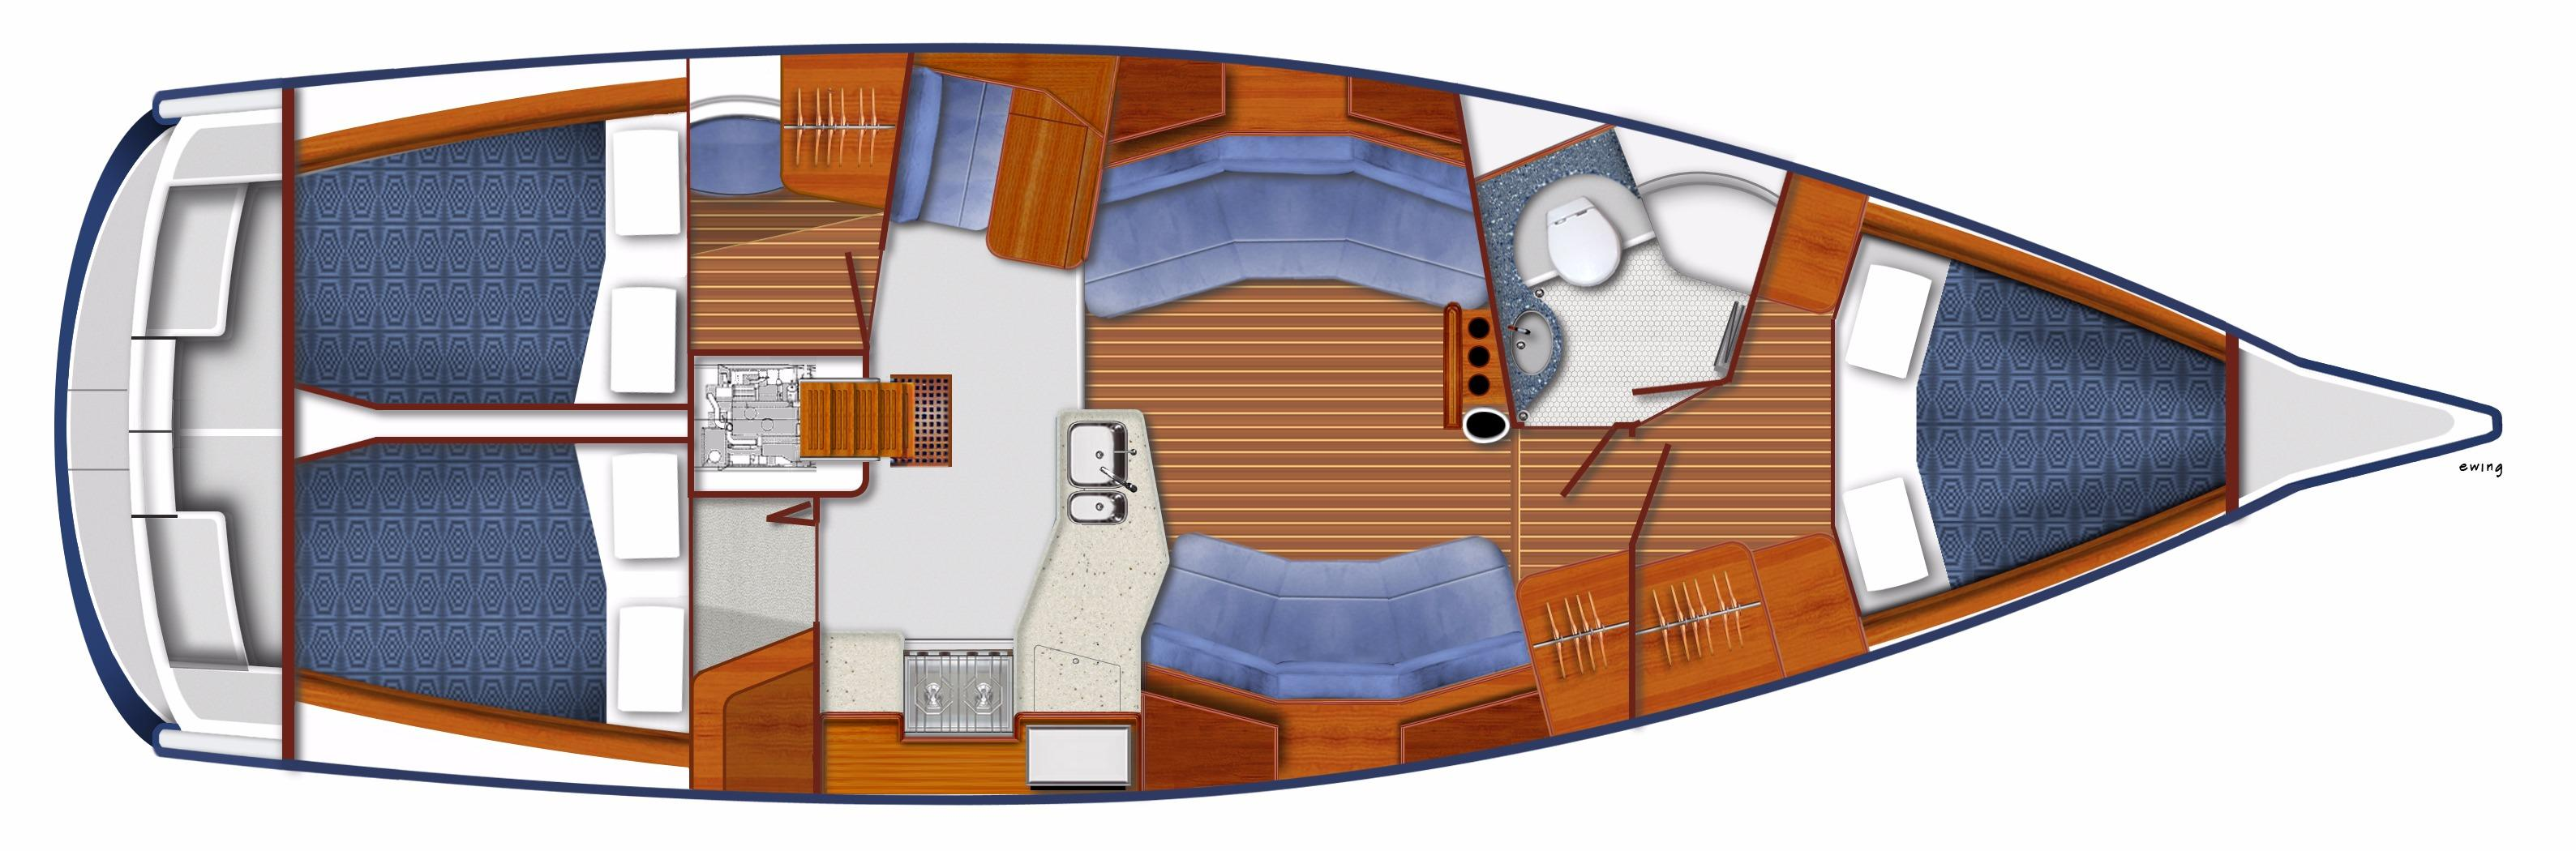 Blue Jacket 40 standard layout options available